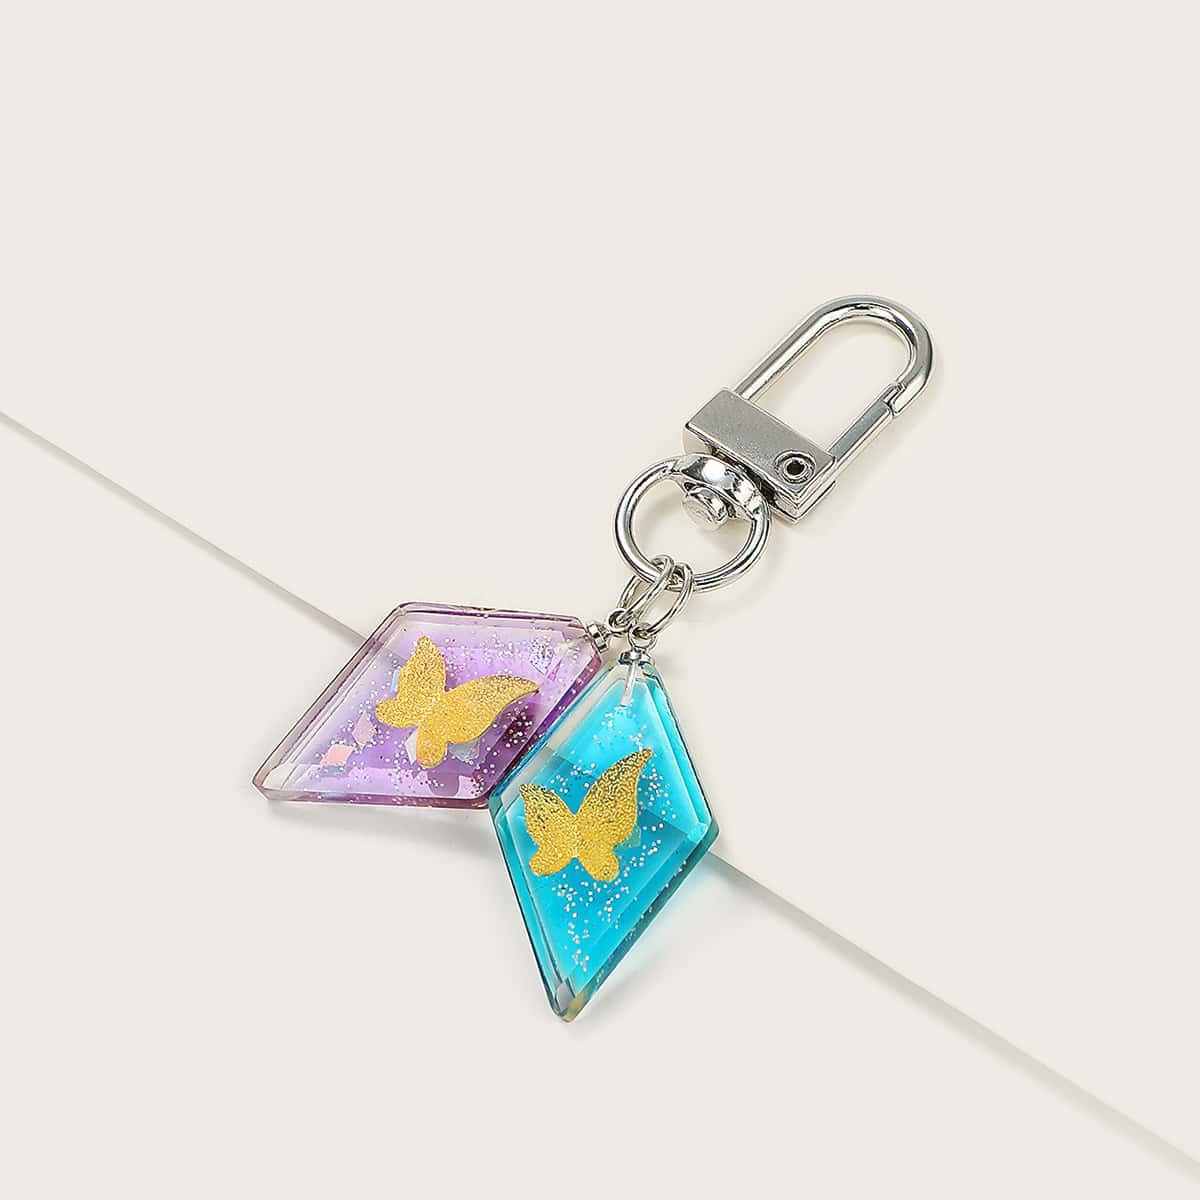 Butterfly Embedded Bag Charm